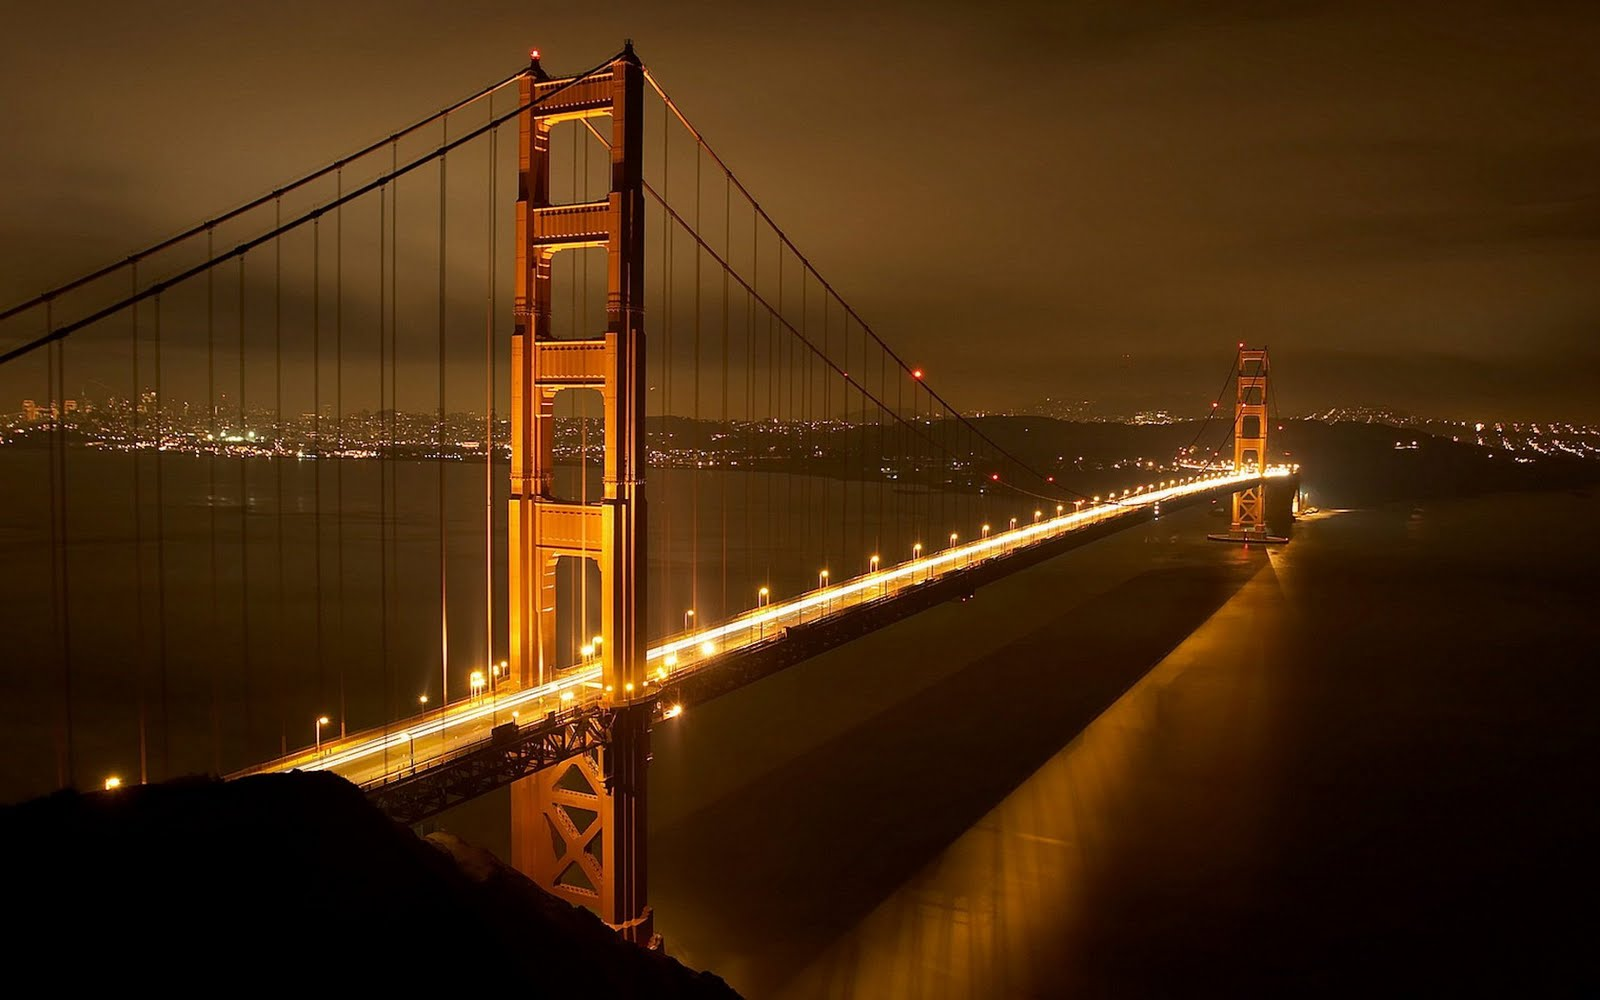 http://4.bp.blogspot.com/-UE3NBnmUqYI/ThNvCTdGZcI/AAAAAAAAABE/sTeiwT09FqU/s1600/golden_gate_bridge_at_night_hd_widescreen_wallpapers_1920x1200.jpeg